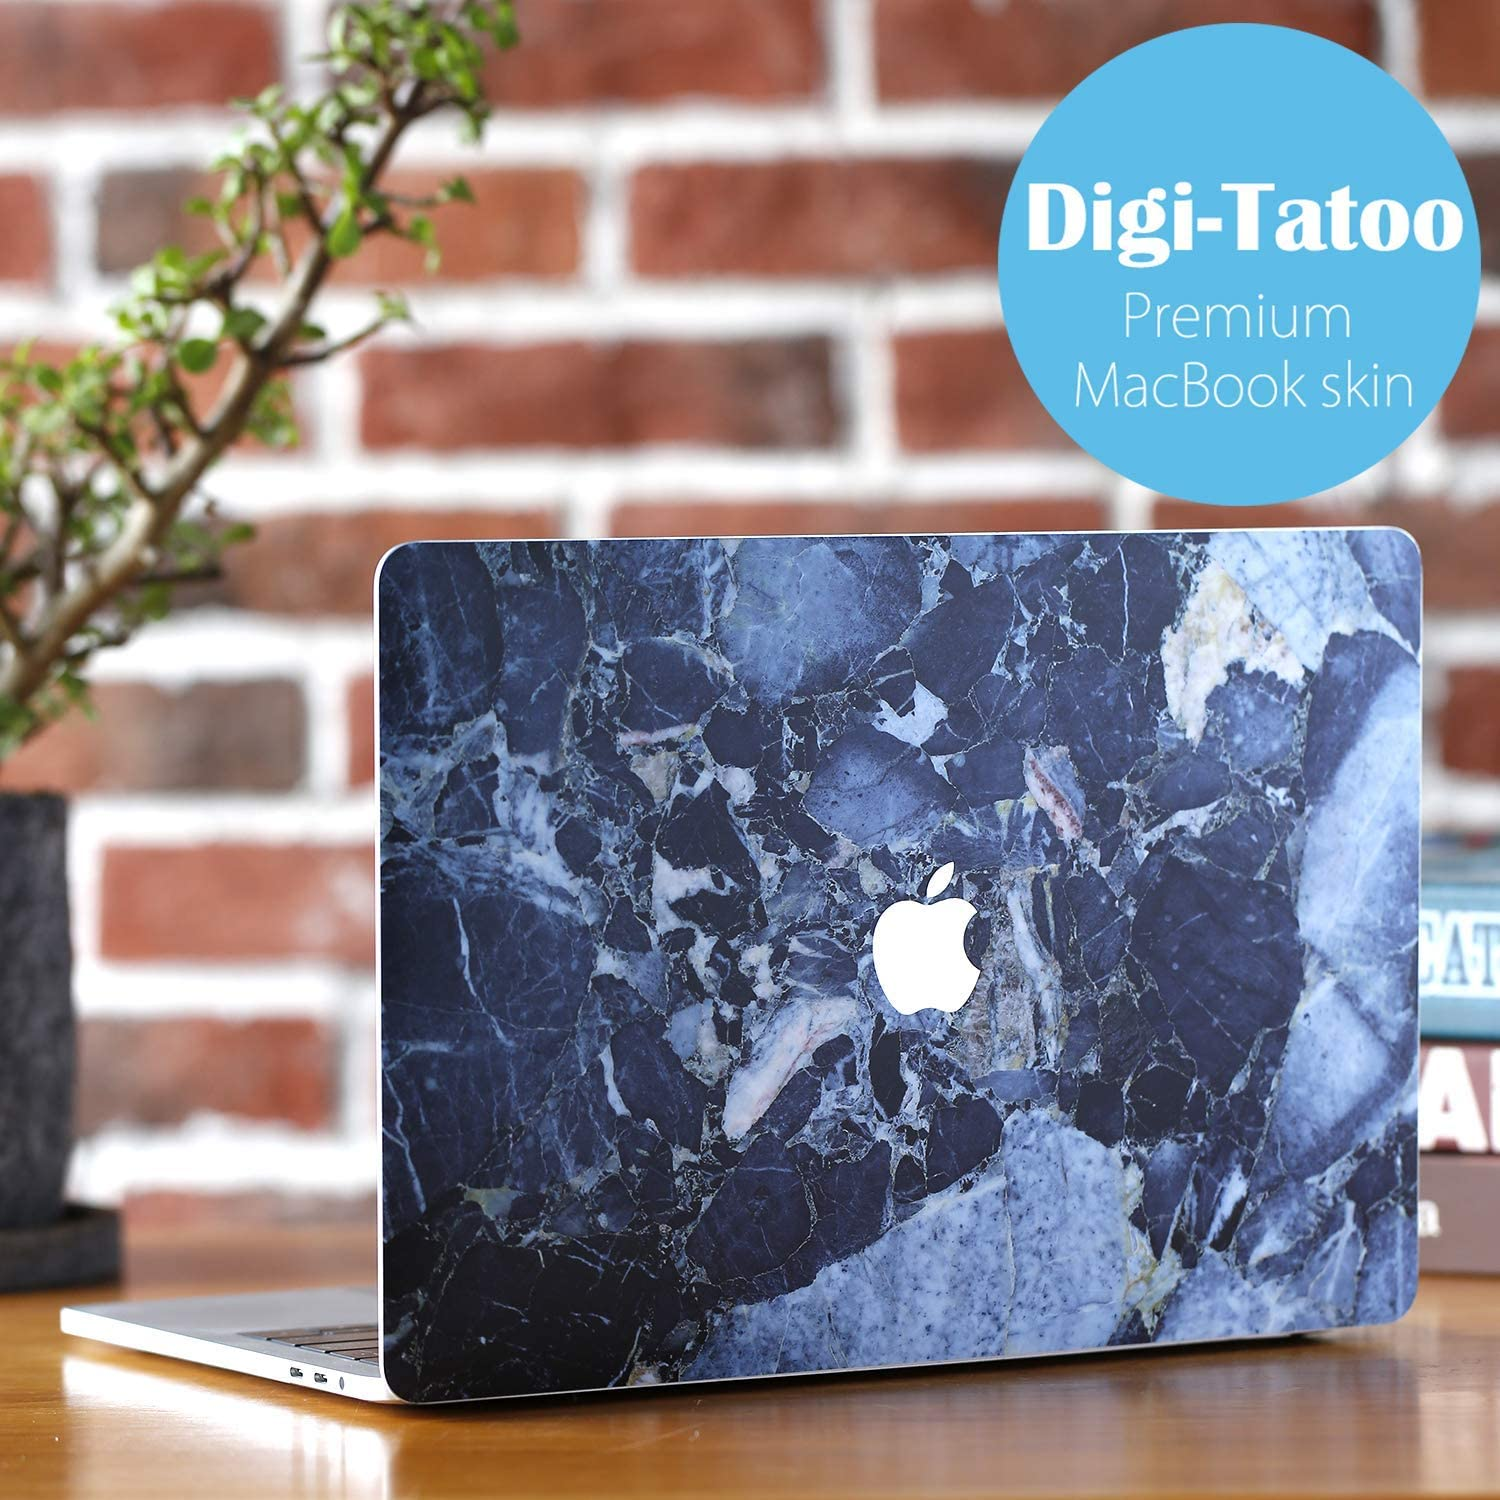 Residue Free Vinyl Skin Model A1708 Wood Texture 2 Digi-Tatoo MacBook Skin Decal Sticker Compatible With Macbook Pro 13 inch w//o Touch Bar Anti-Scratch Easy Apply